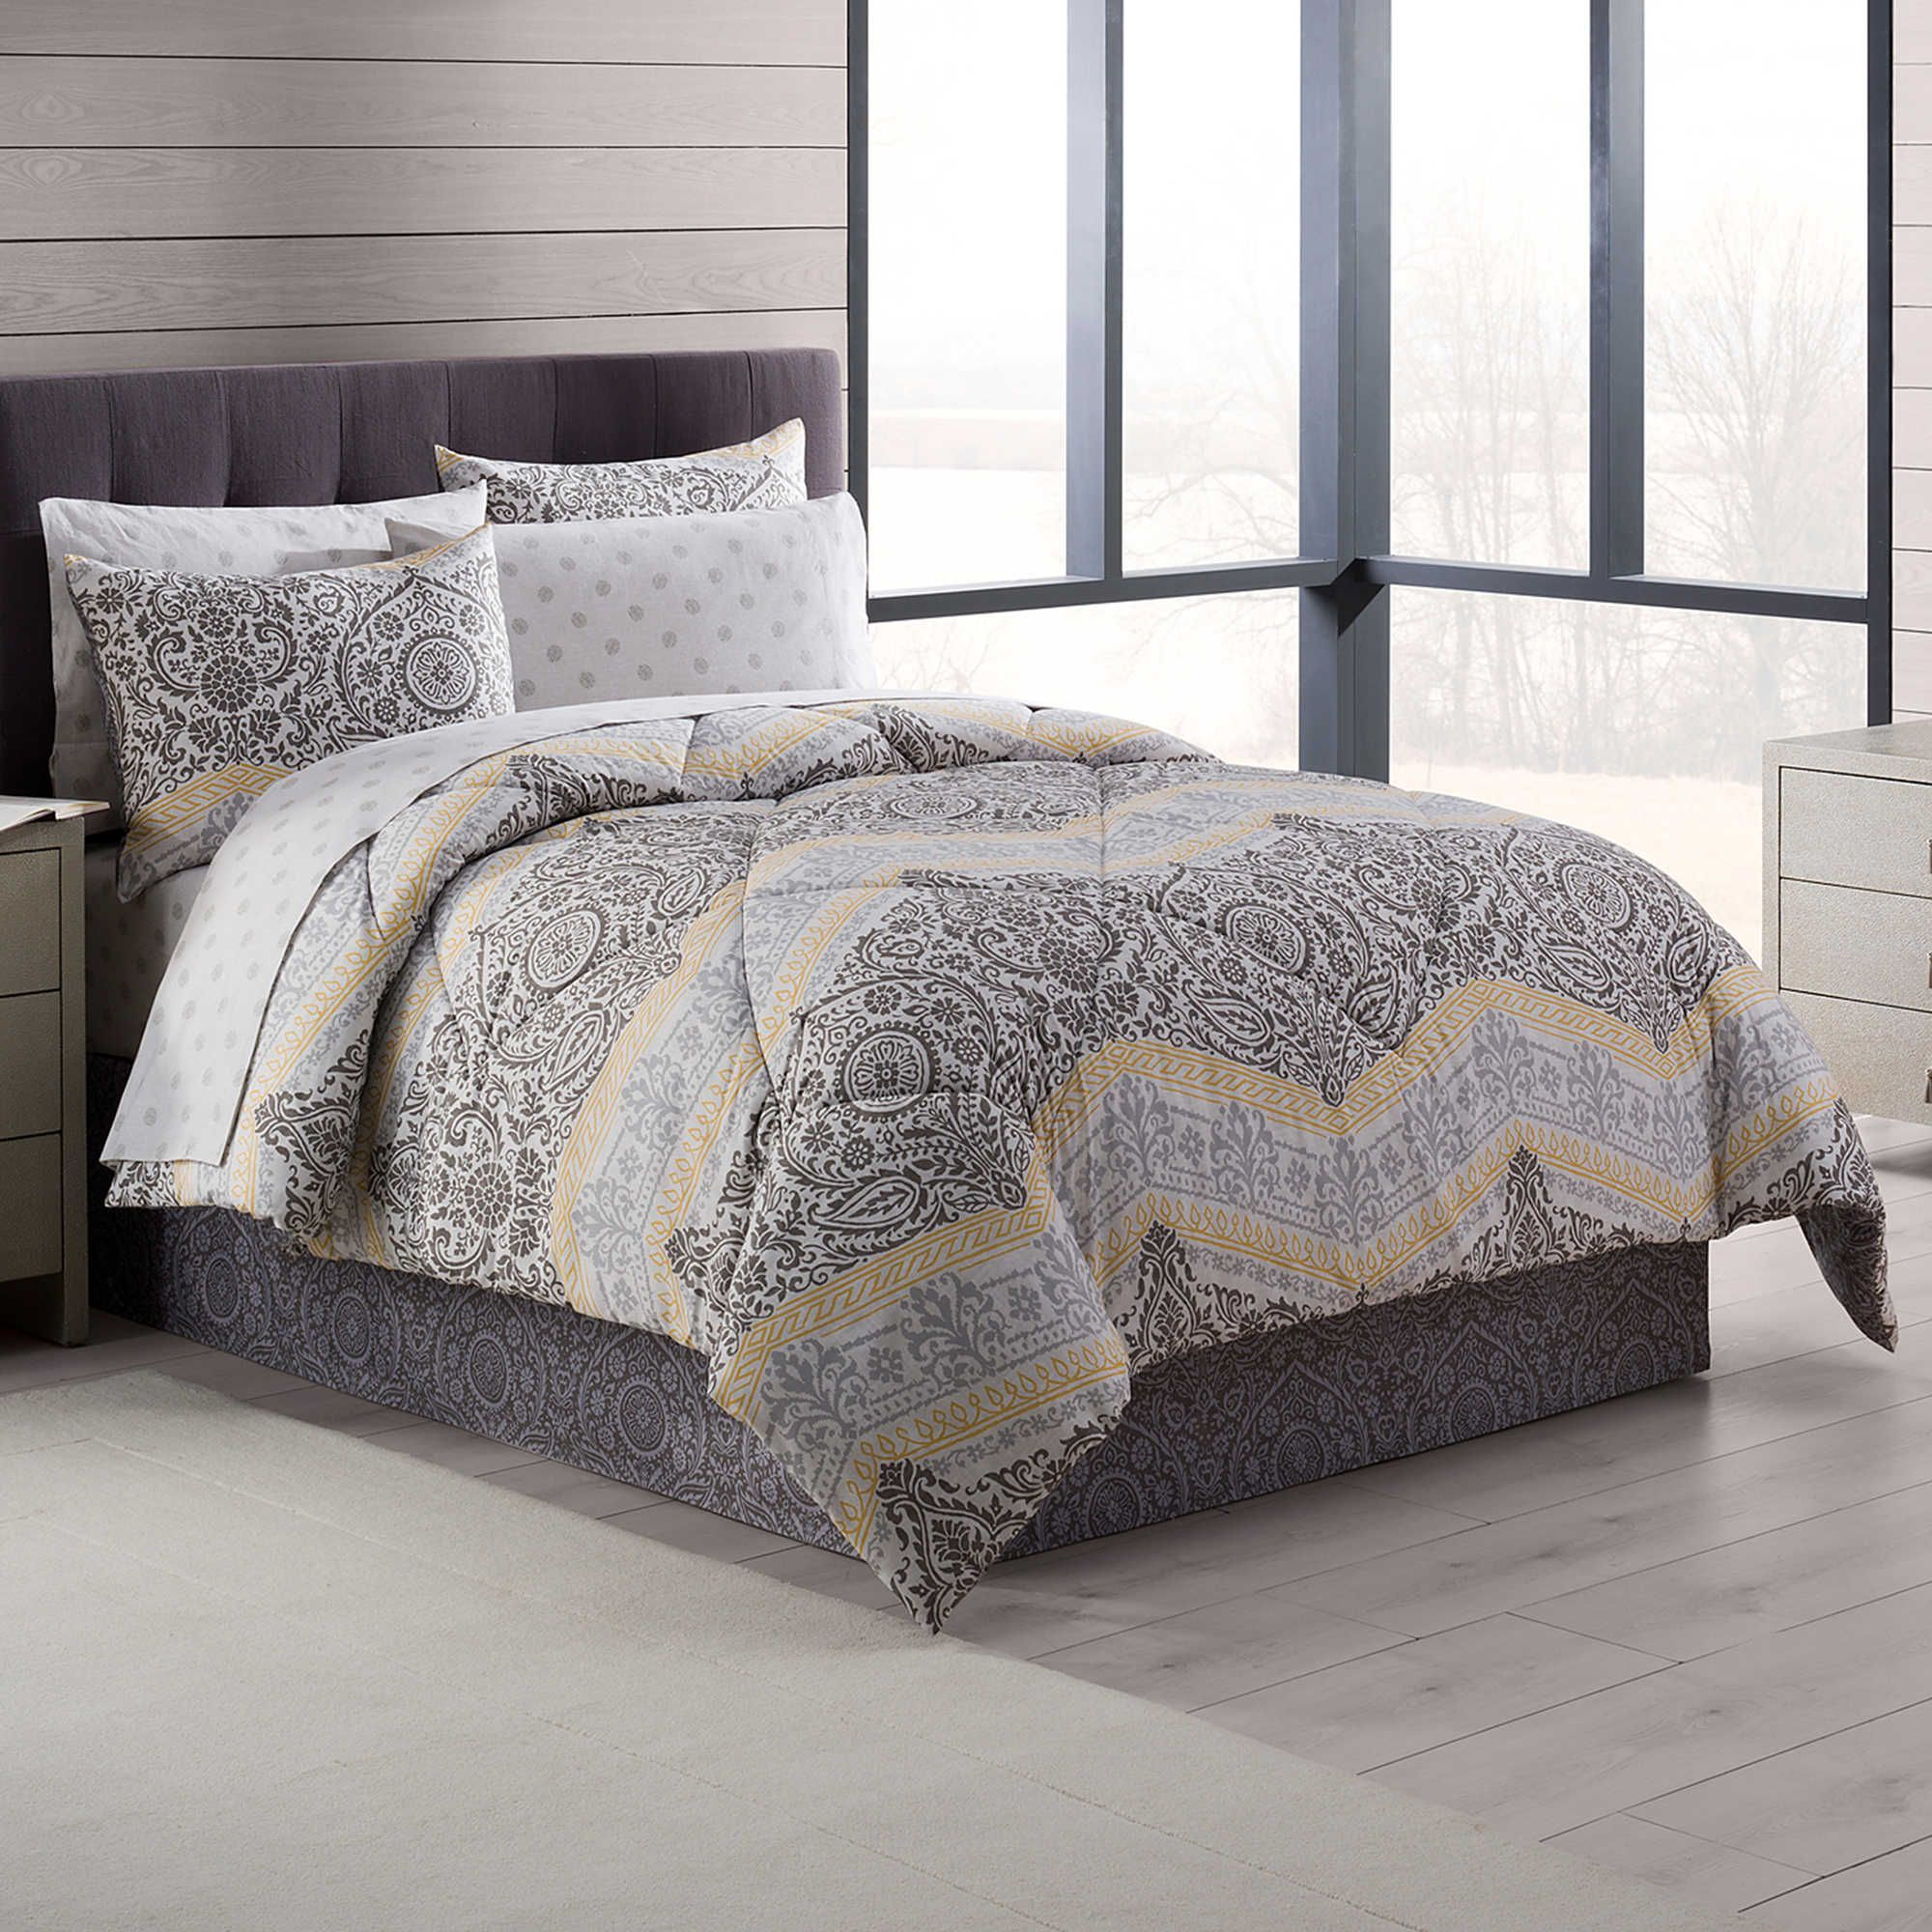 young yellow grey will chevron your gray modern that bedroom pop bedding make and bed